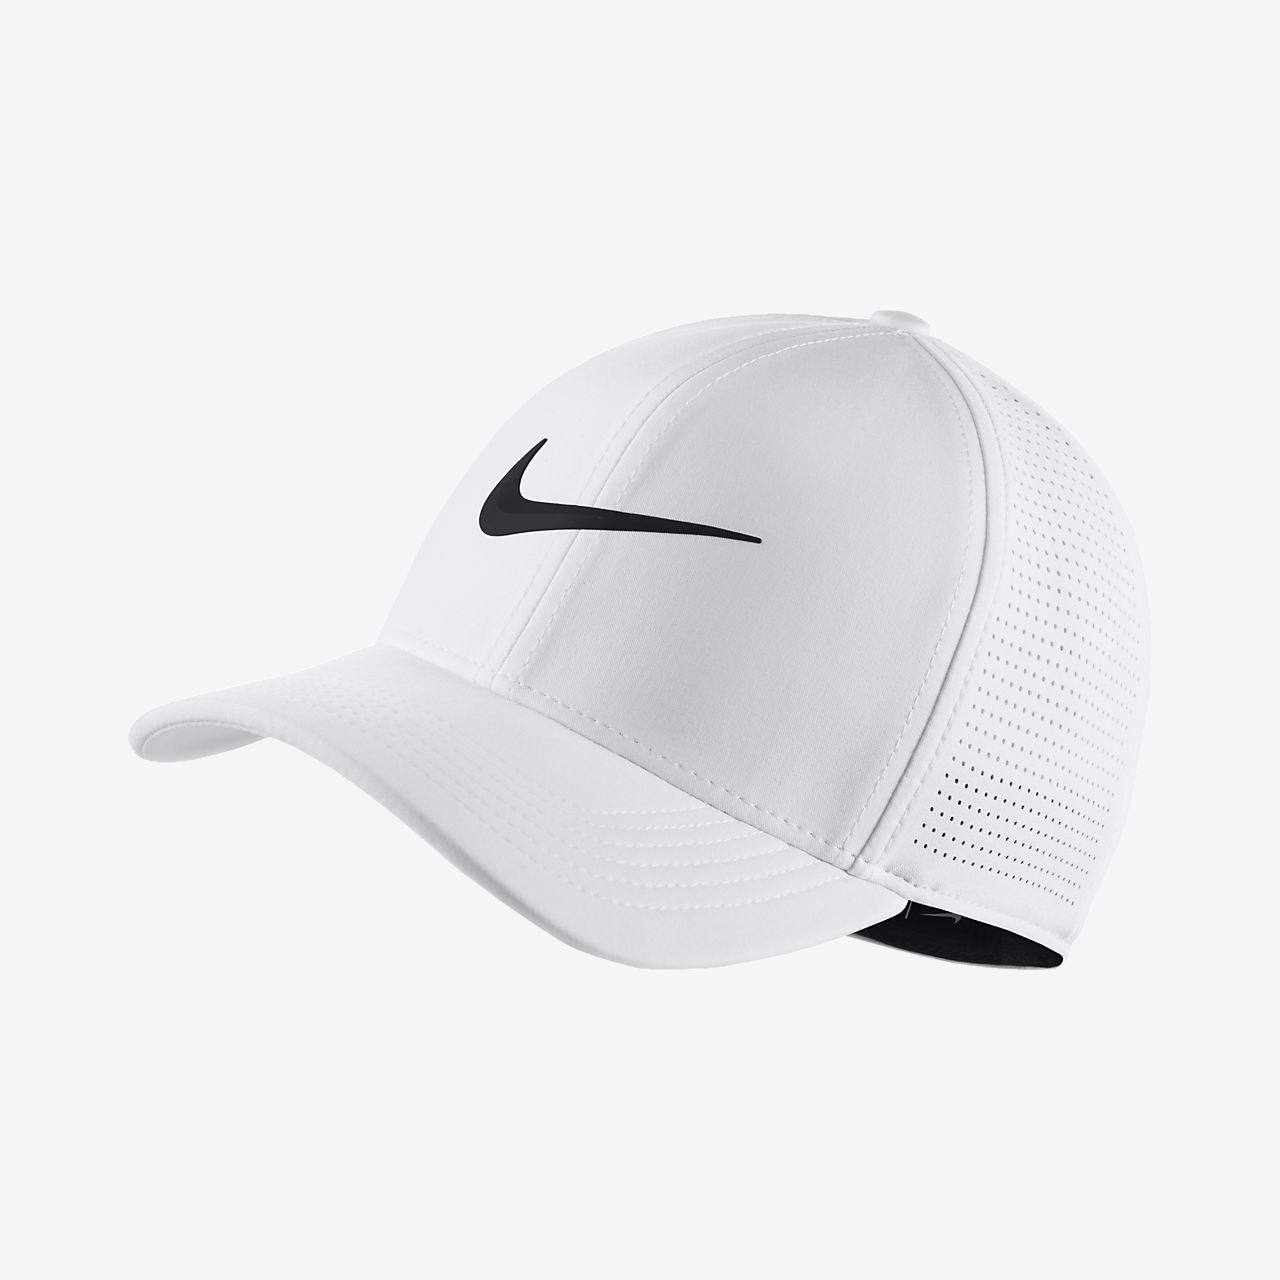 c12b43d1cd36a Nike AeroBill Classic 99 Fitted Golf Hat. Nike.com